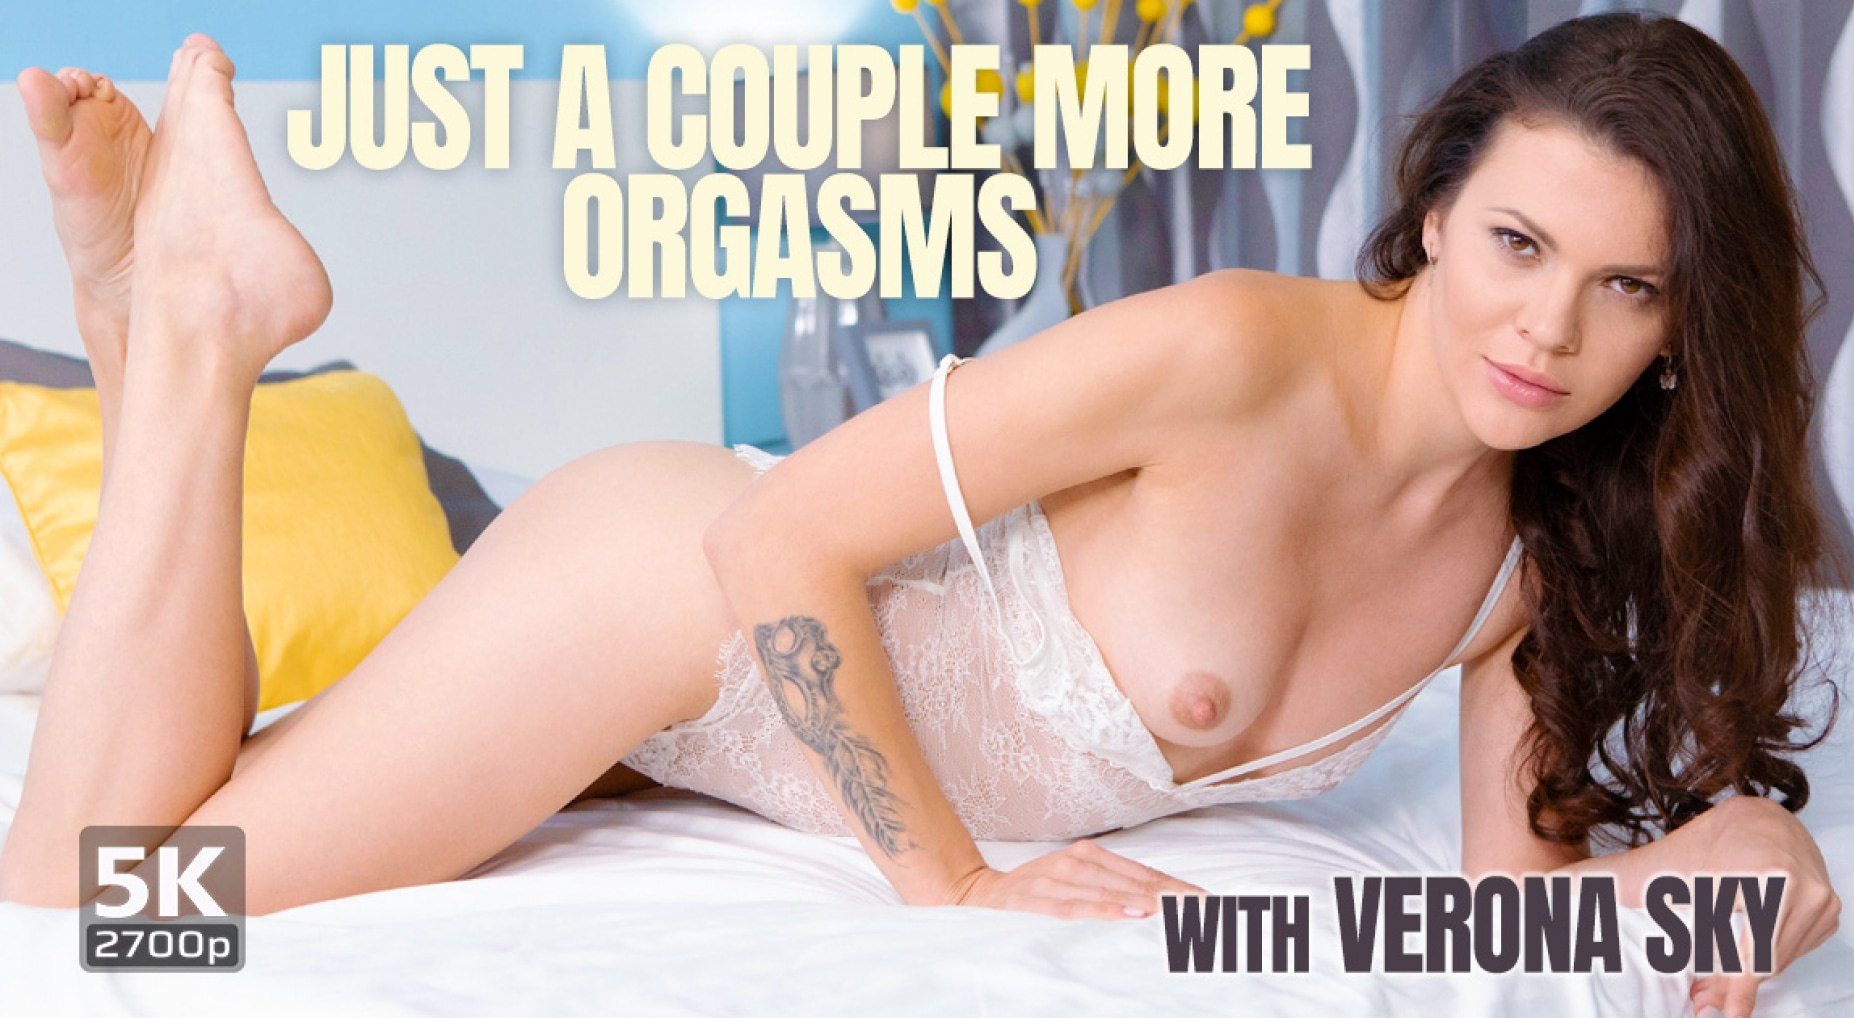 Just A Couple More Orgasms